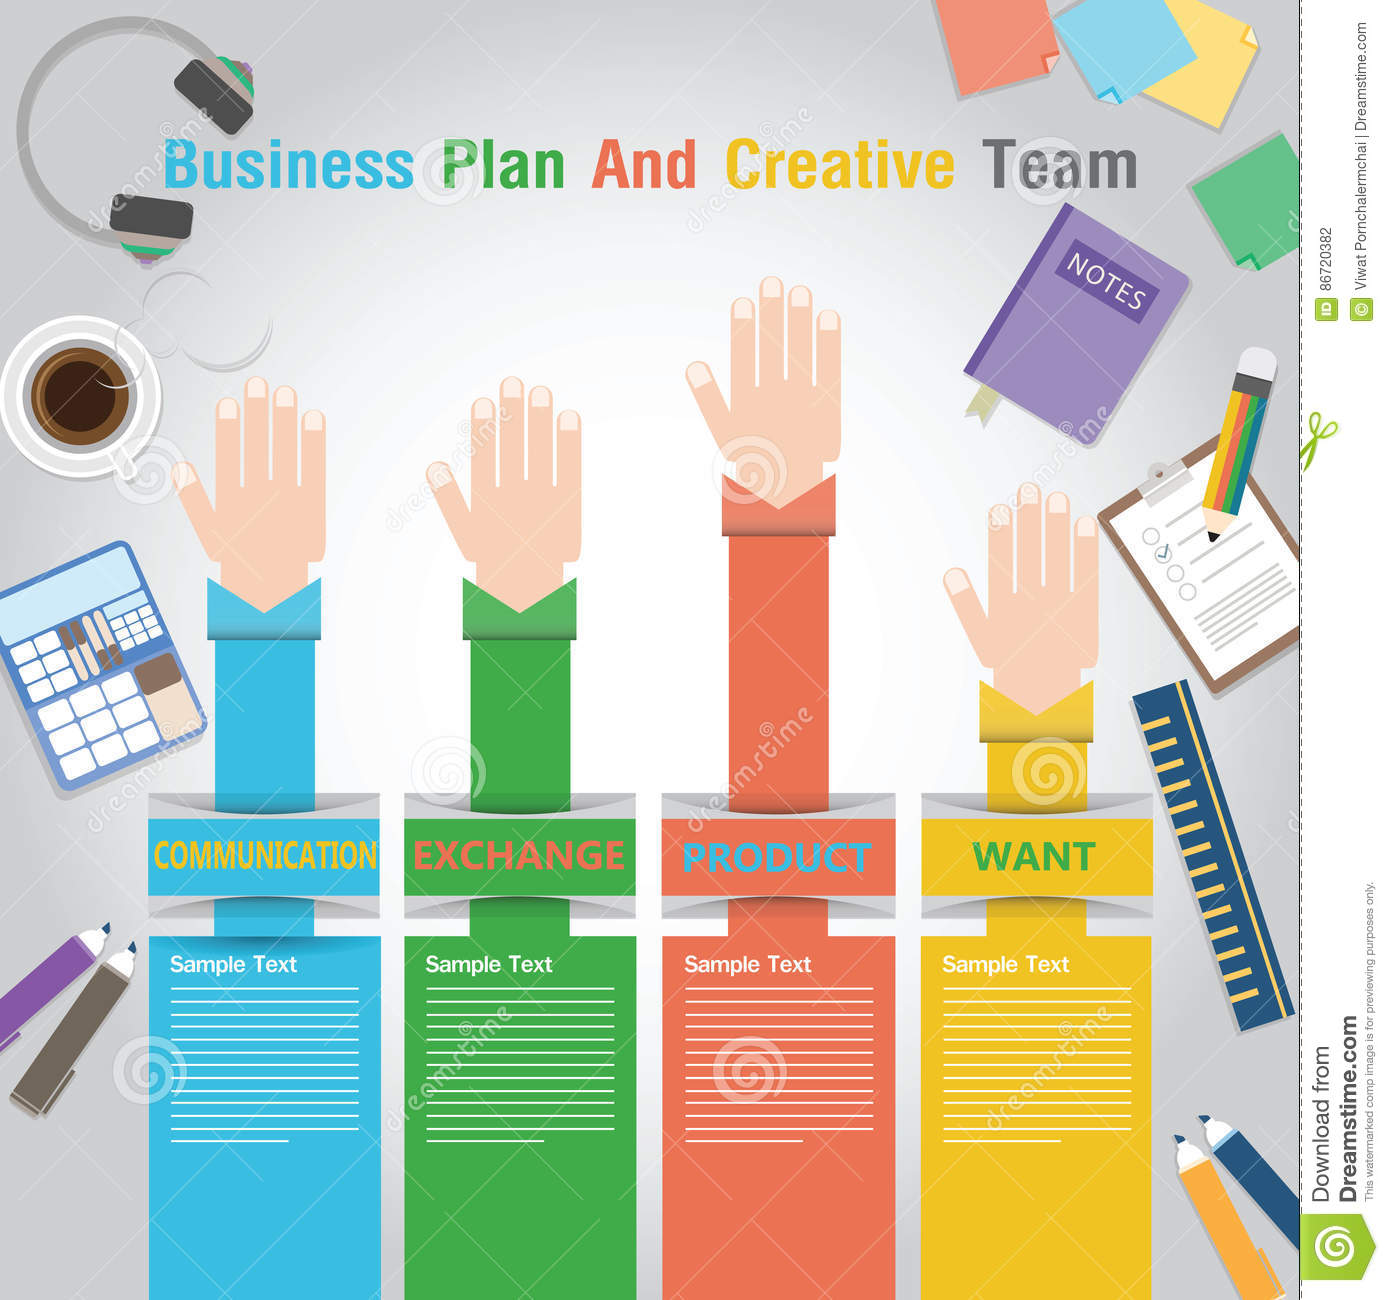 Business plan graphic design sample advice for critical essay